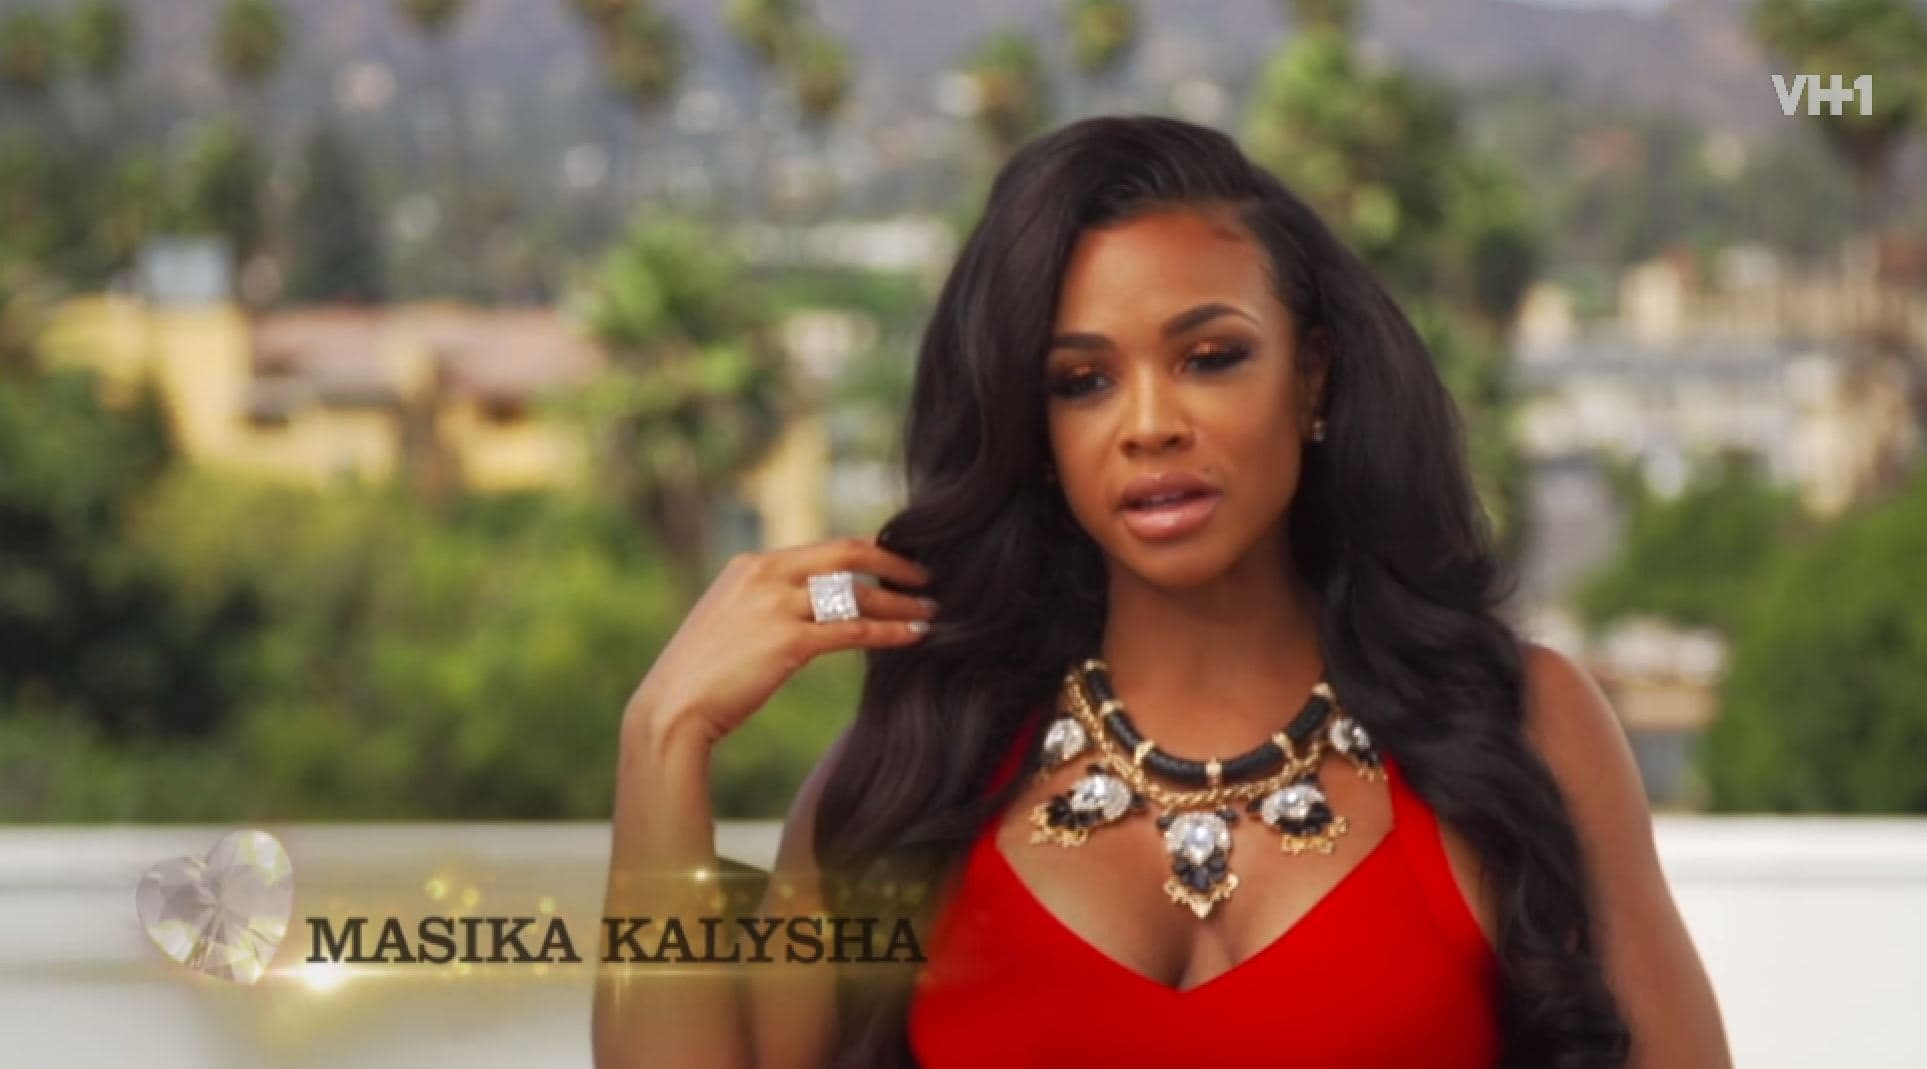 Masika before and after surgery photo - 1